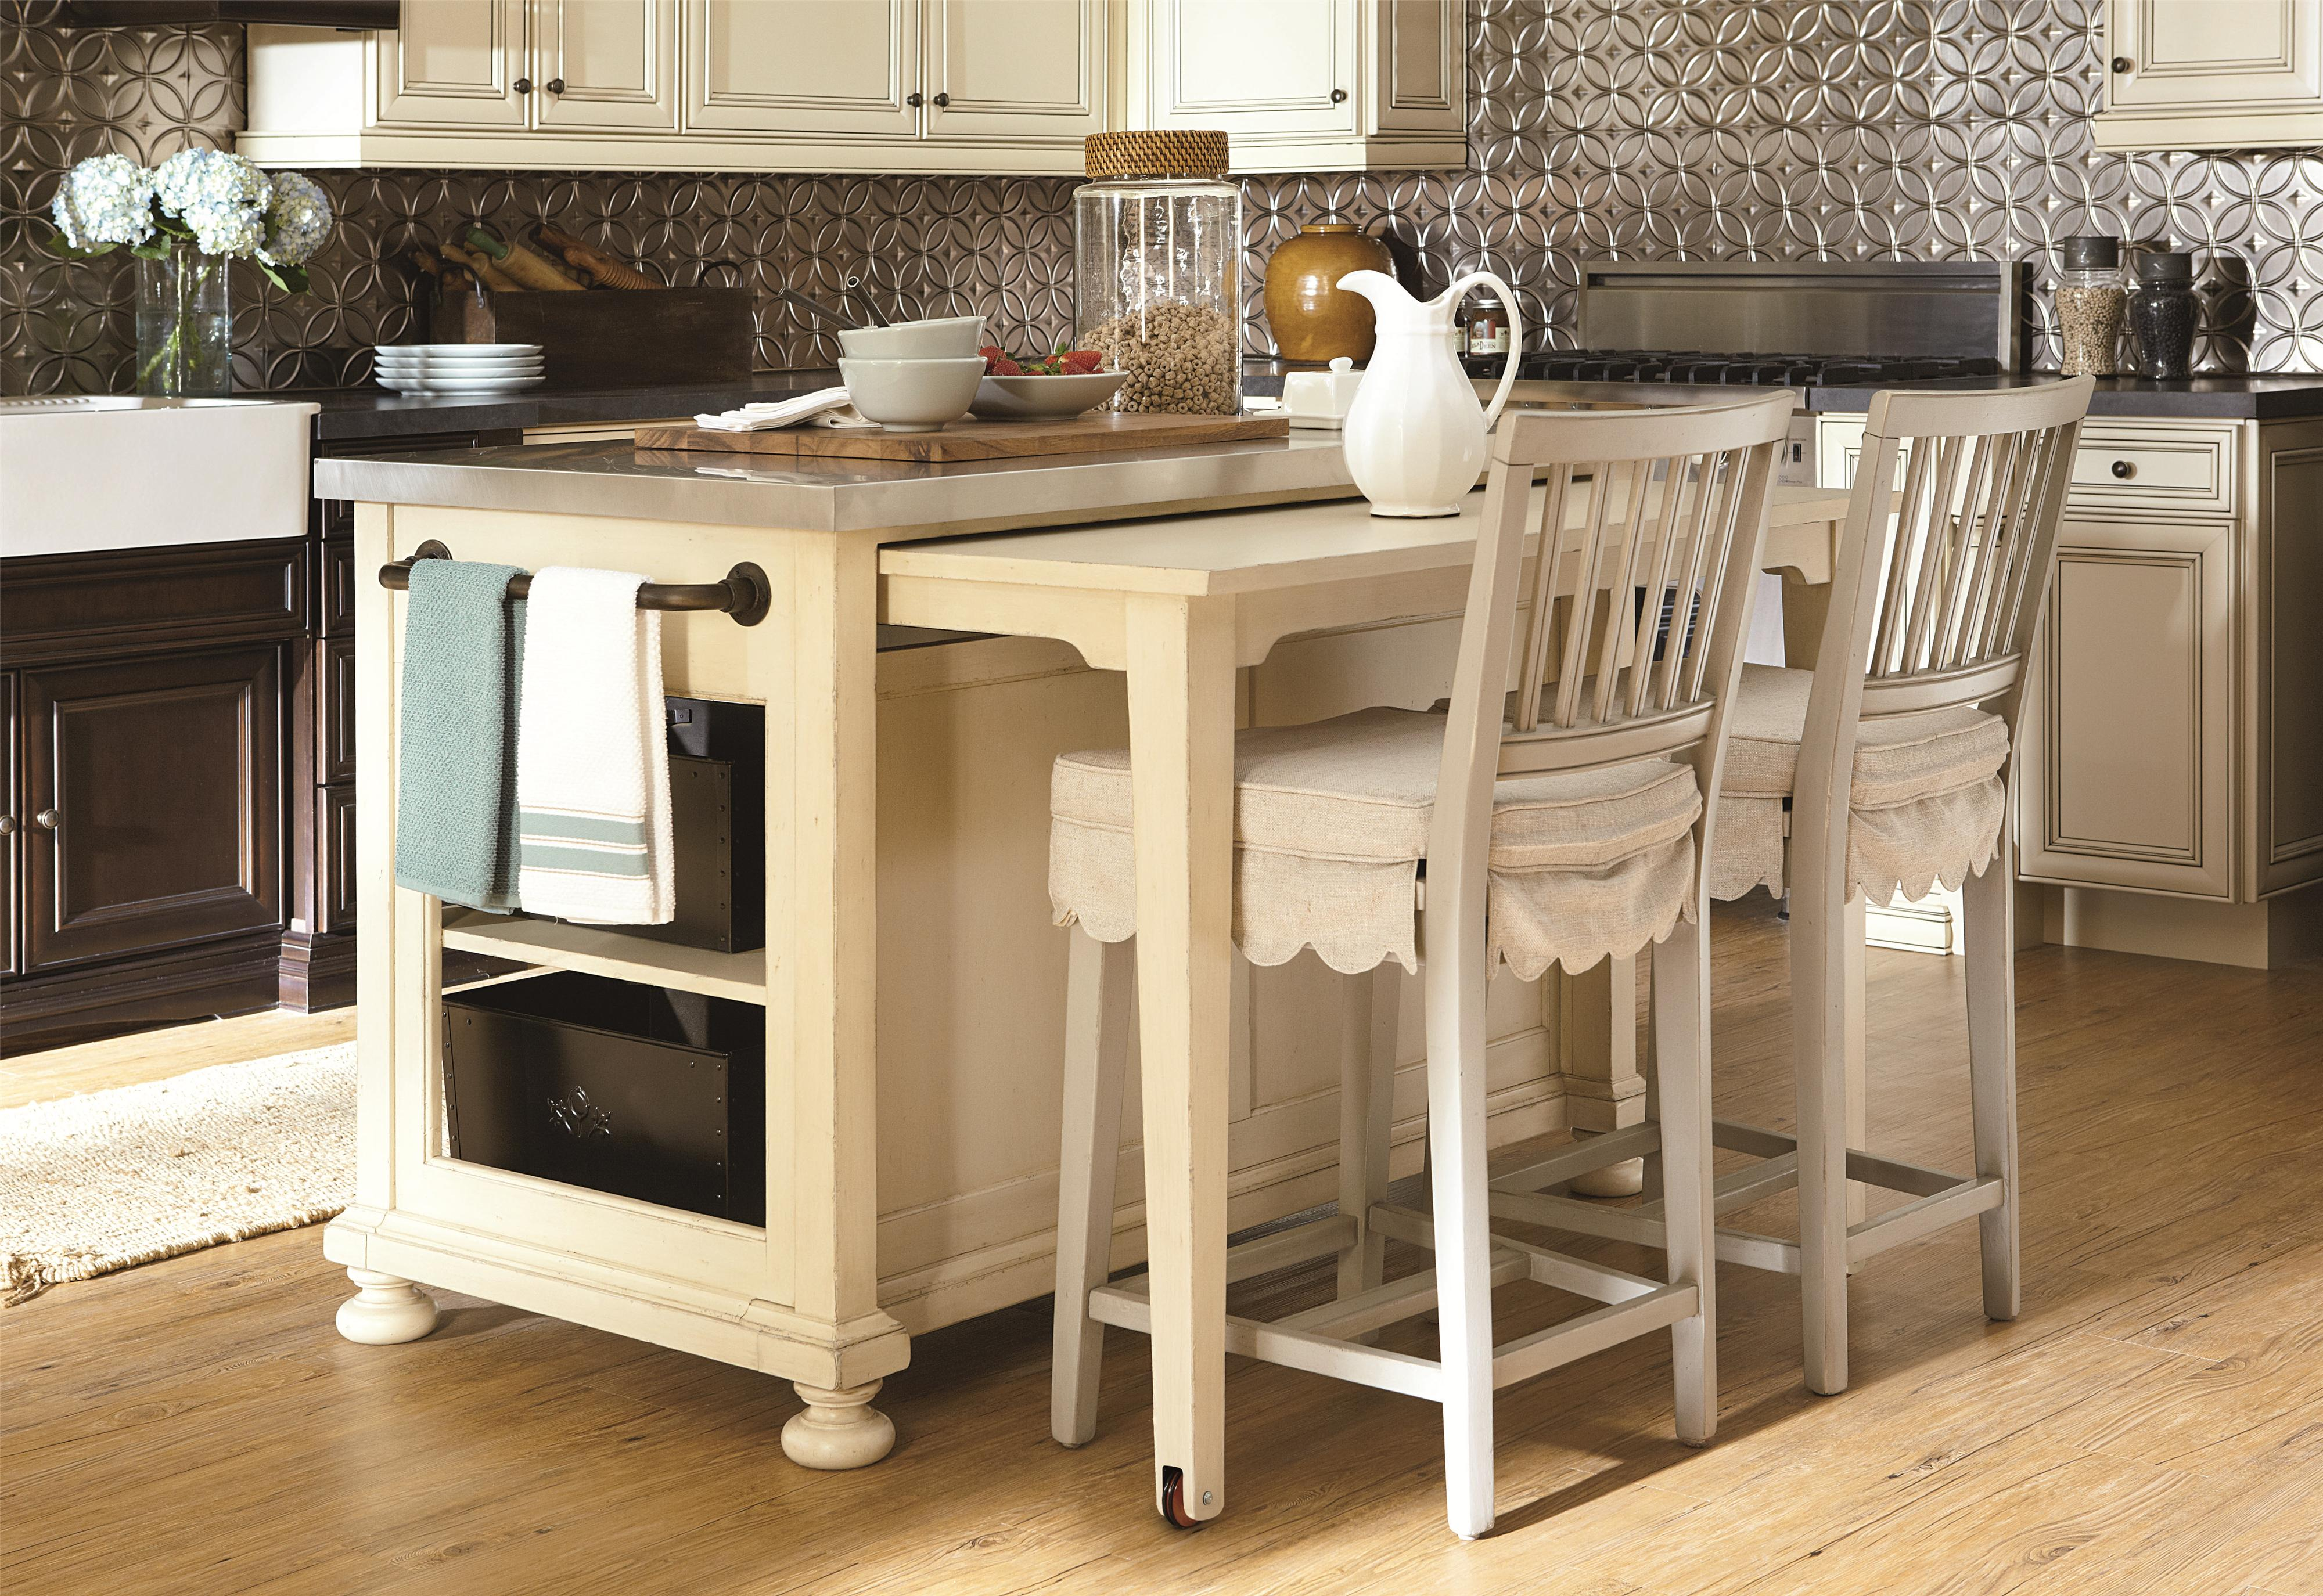 A Kitchen Island With Pull Out Table From